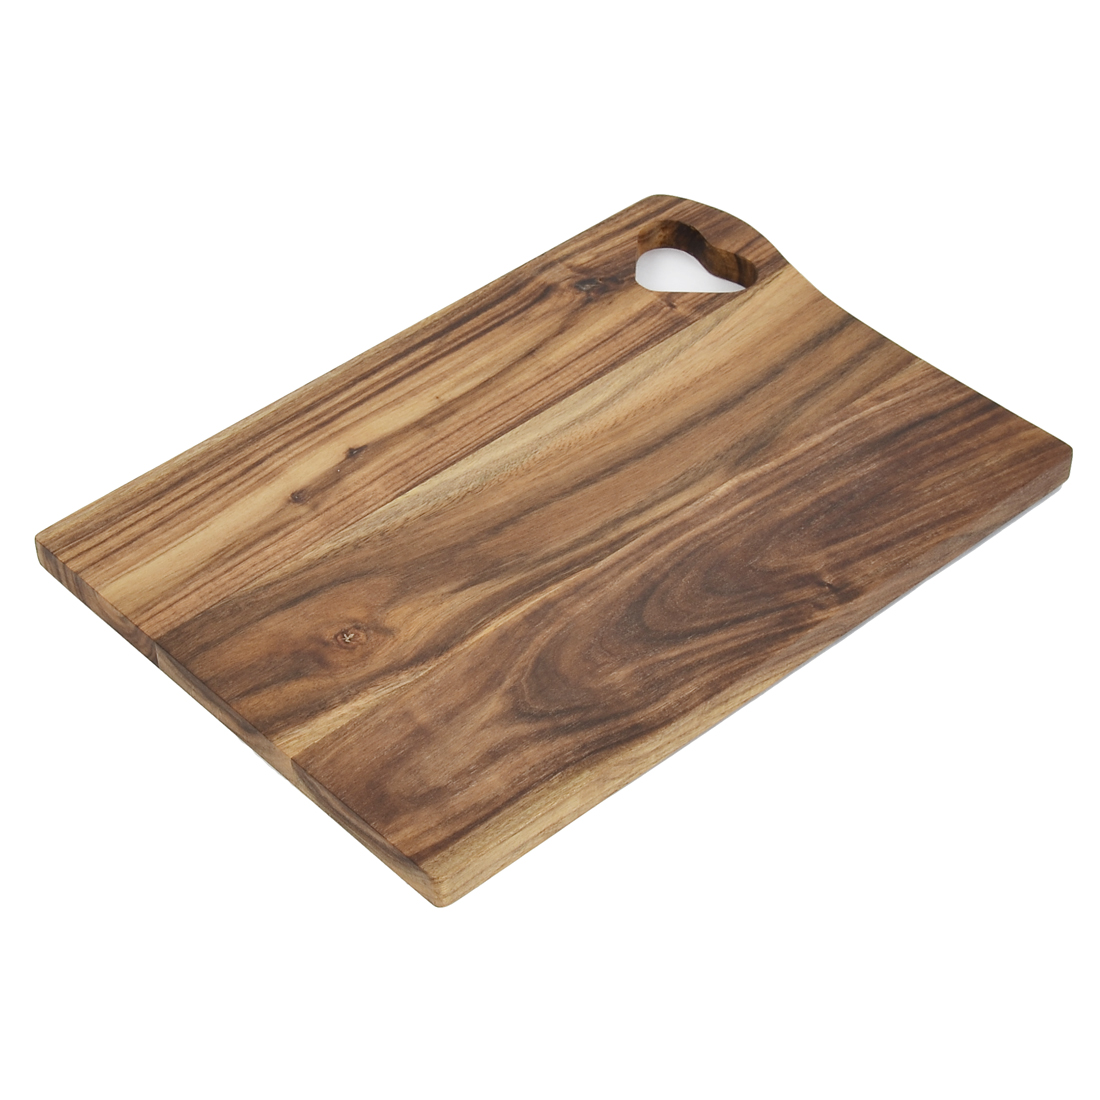 Kitchen Pizza Bread Wooden Heart Hollow-out Design Cutting Chopping Board